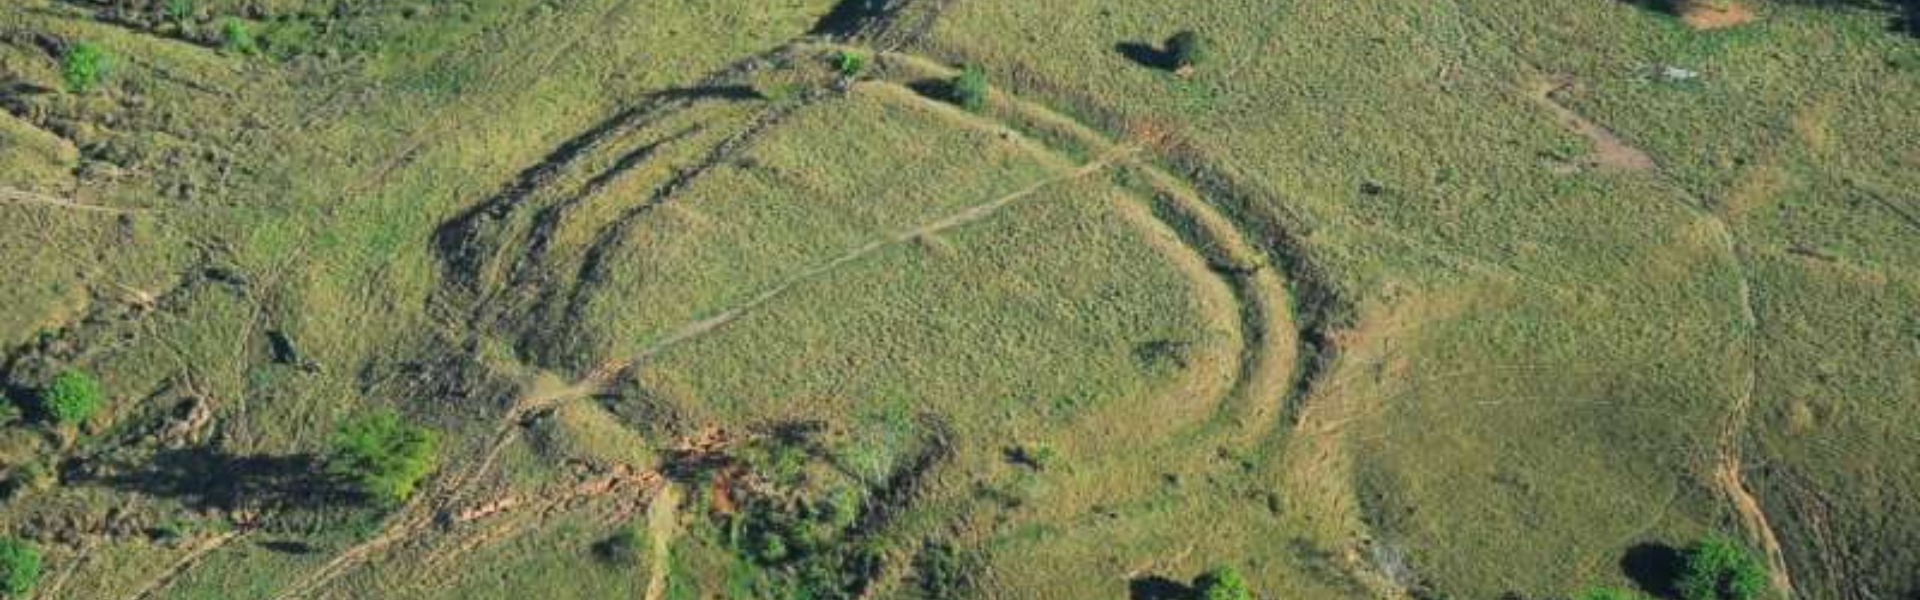 Cientos de antiguos movimientos de tierra similares a Stonehenge encontrados en el Amazonas-NATION